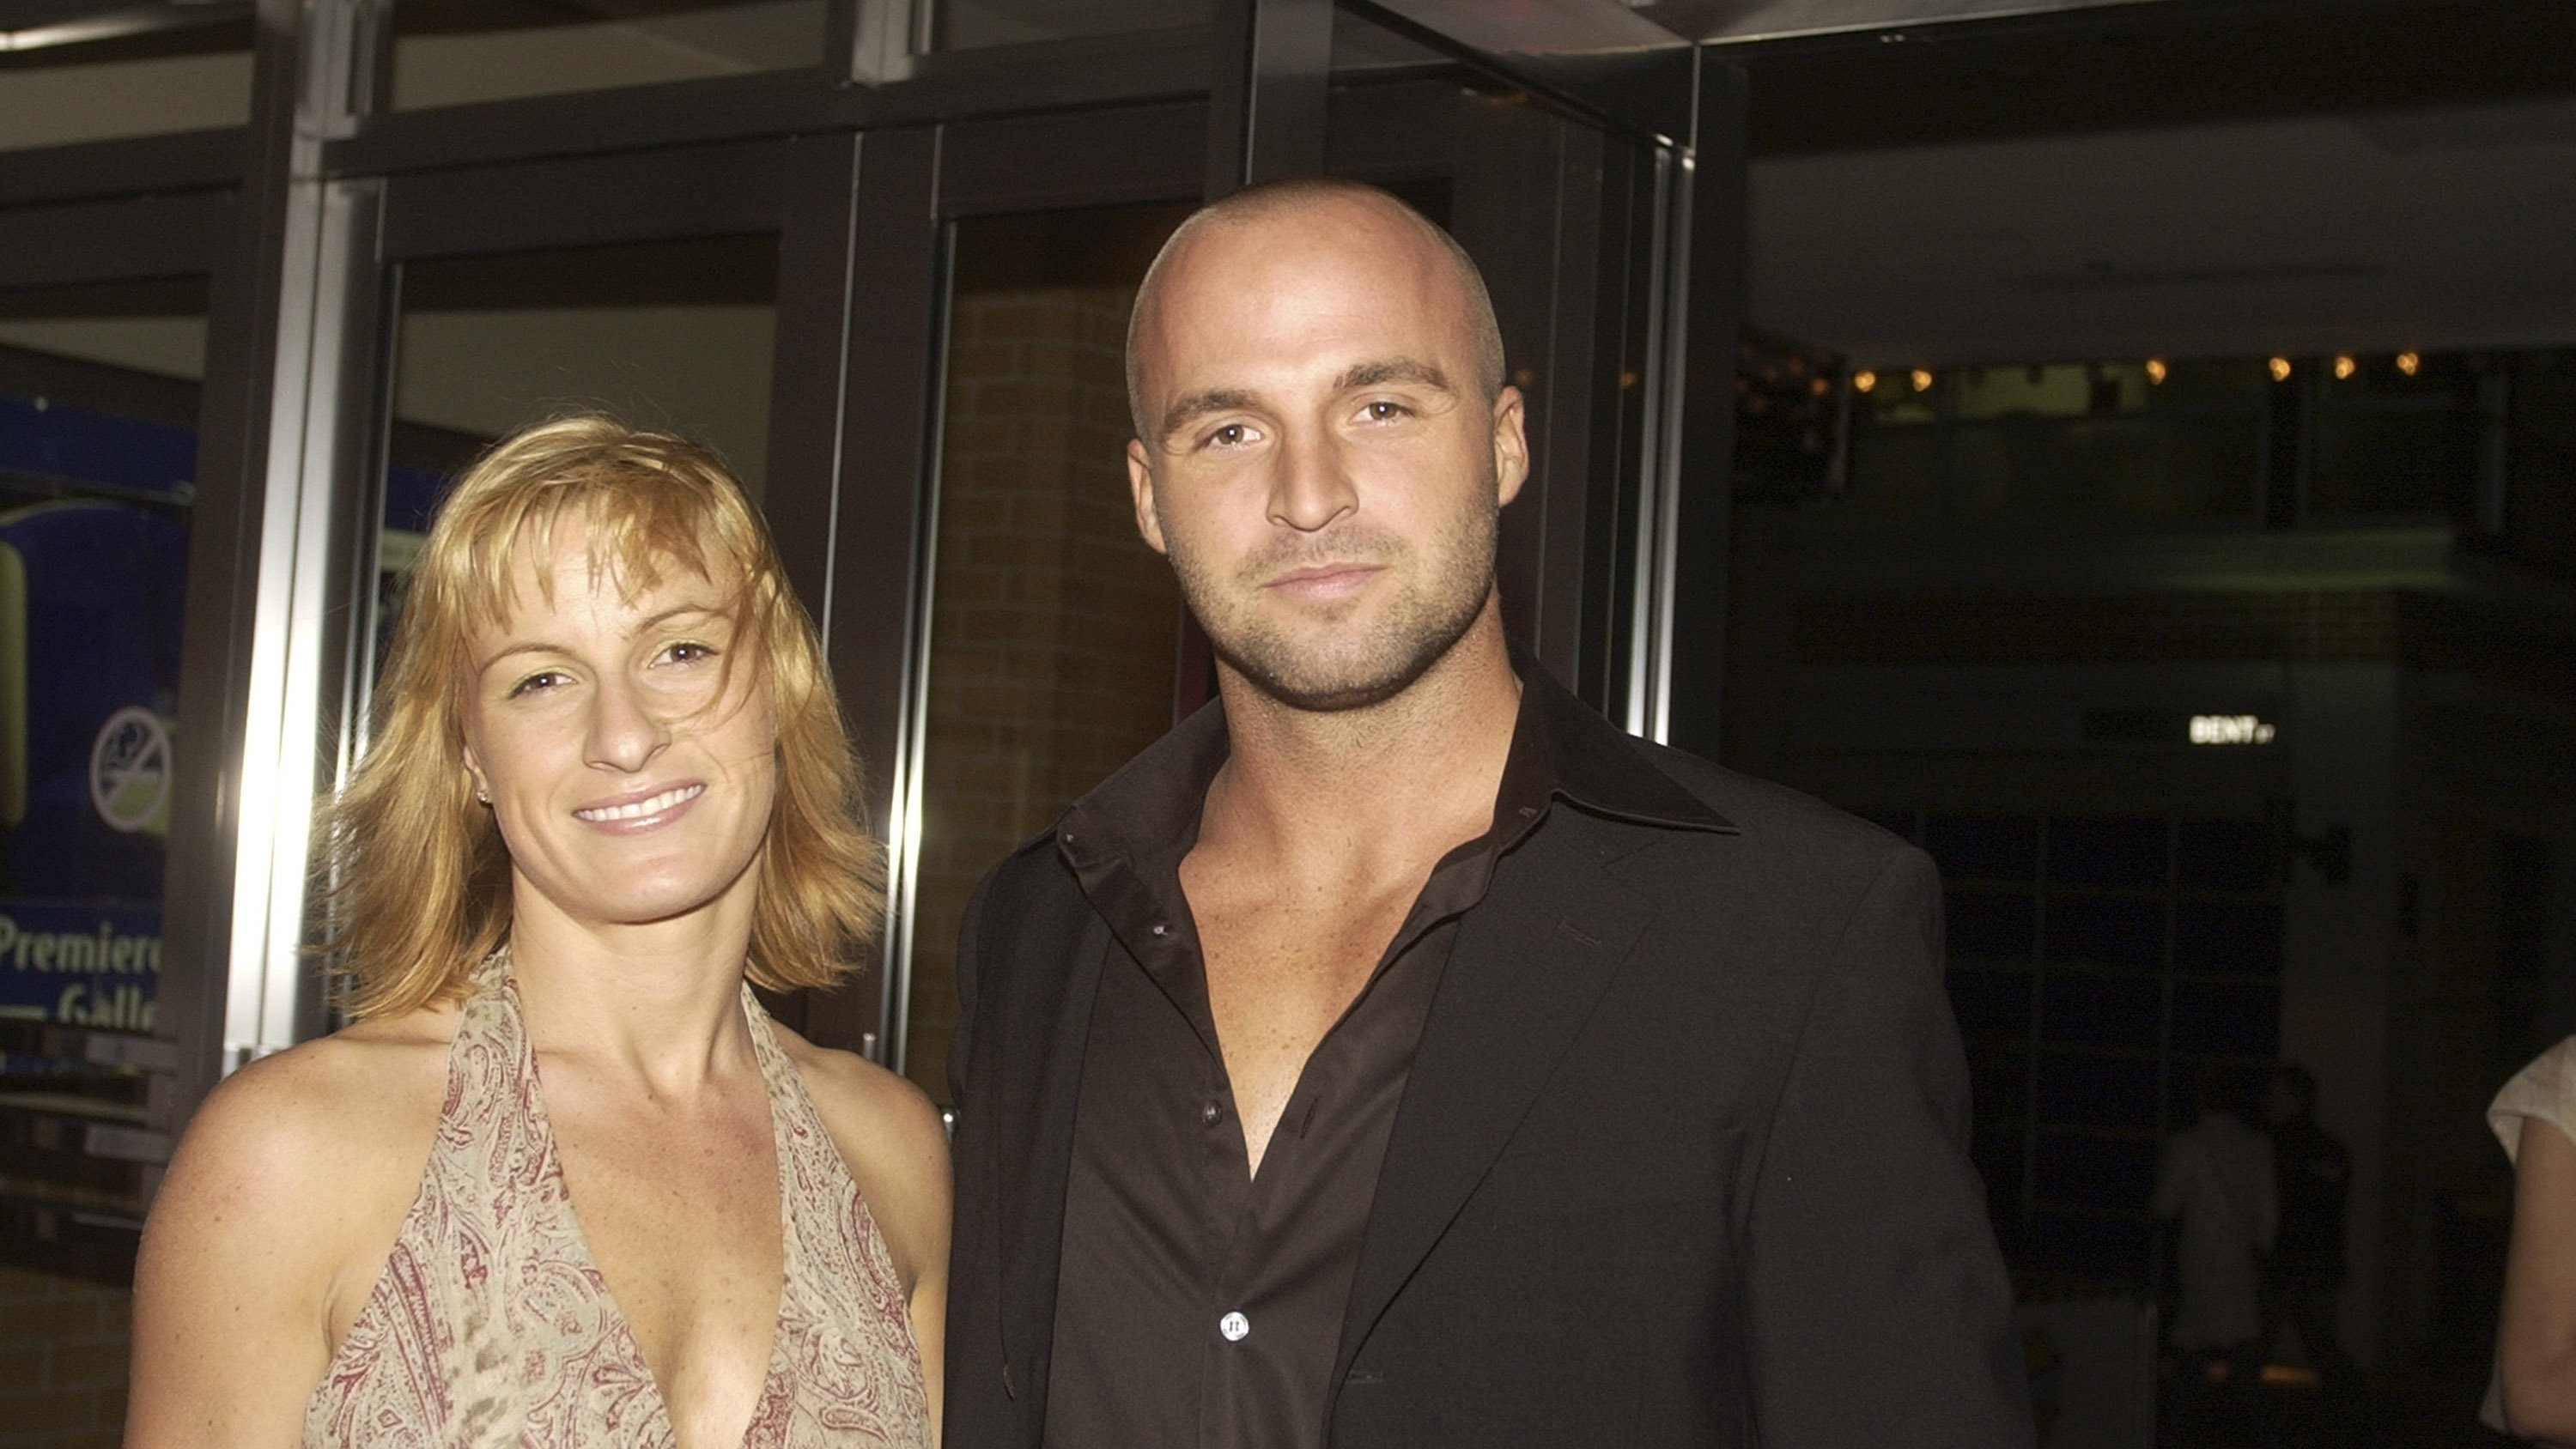 Home and Away actor Ben Unwin has died aged 41